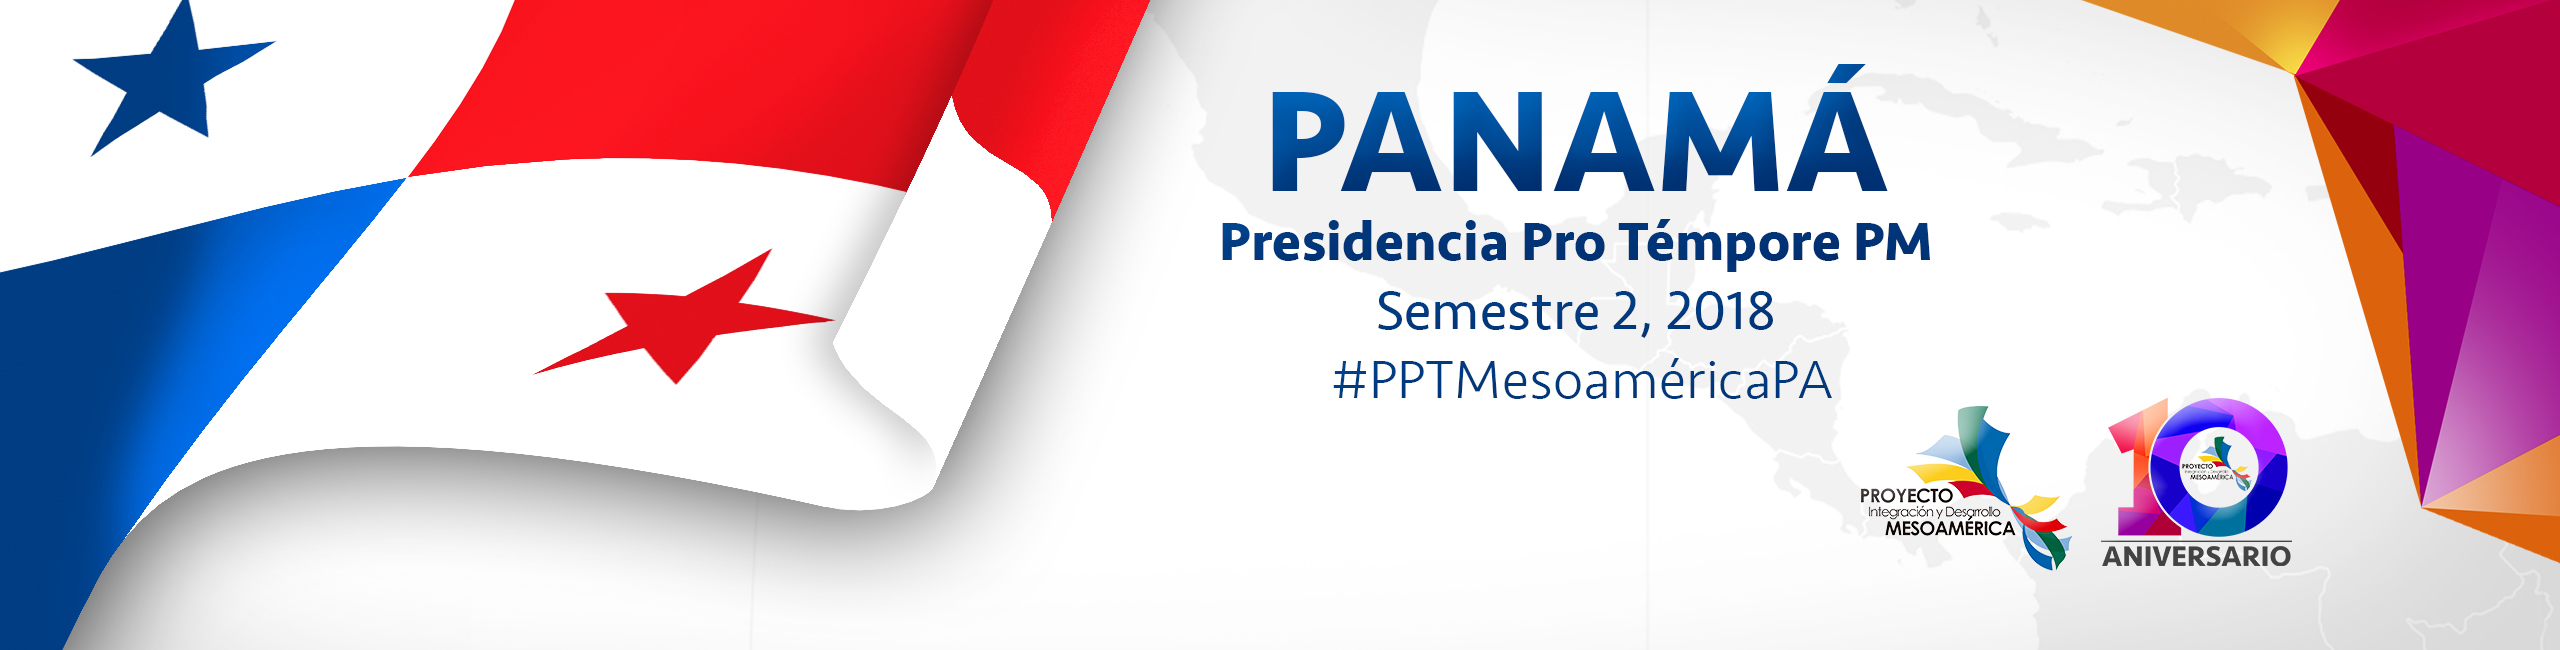 Banner-Panam-PPT